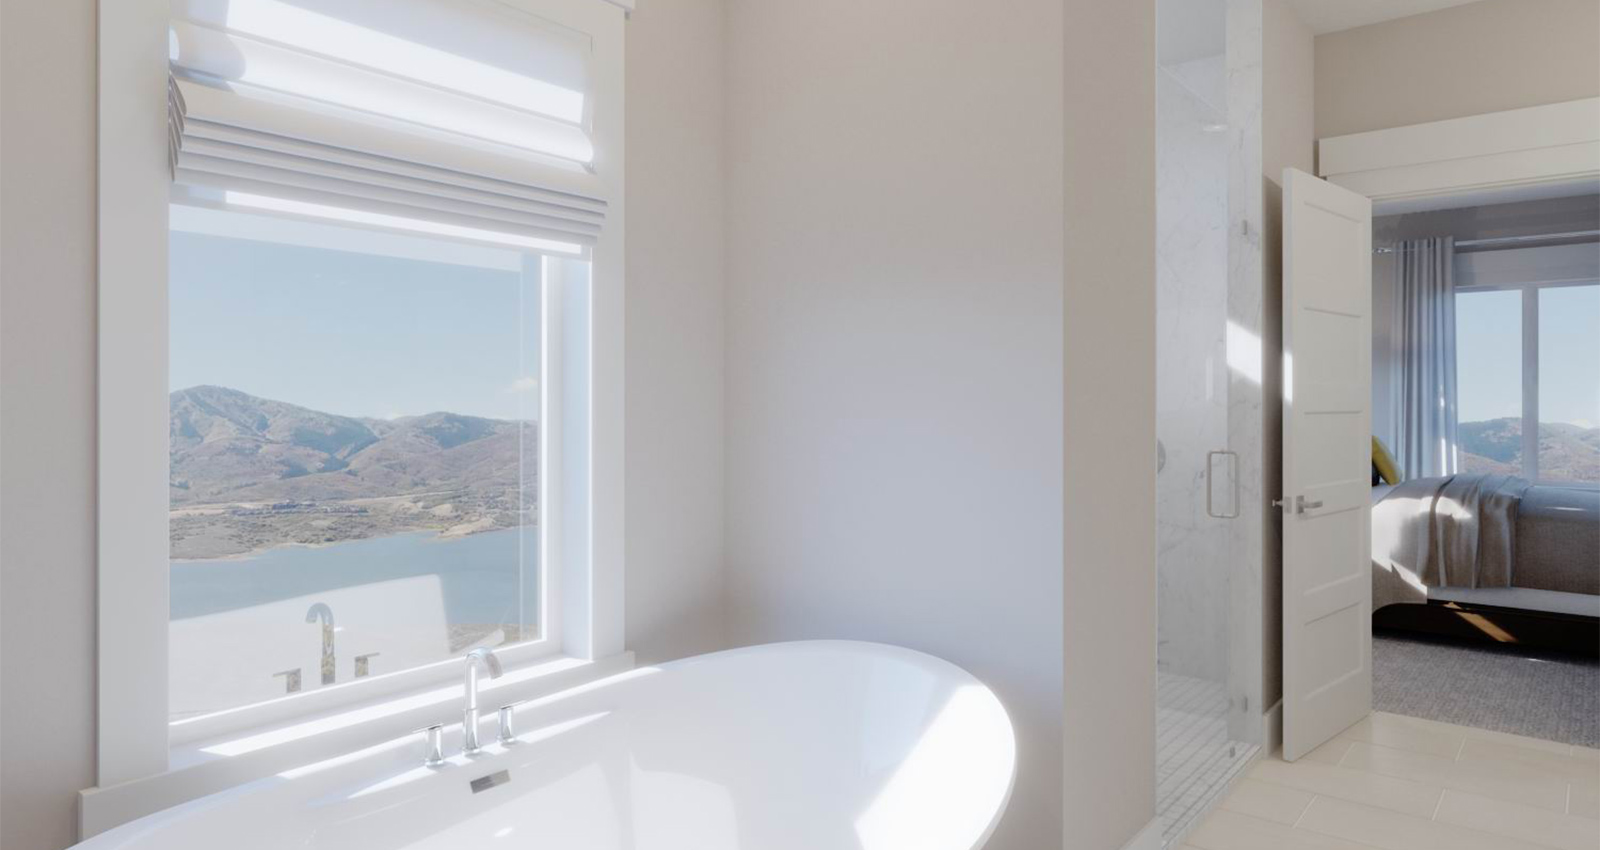 mountain view from luxury bathtub in gcd townhome